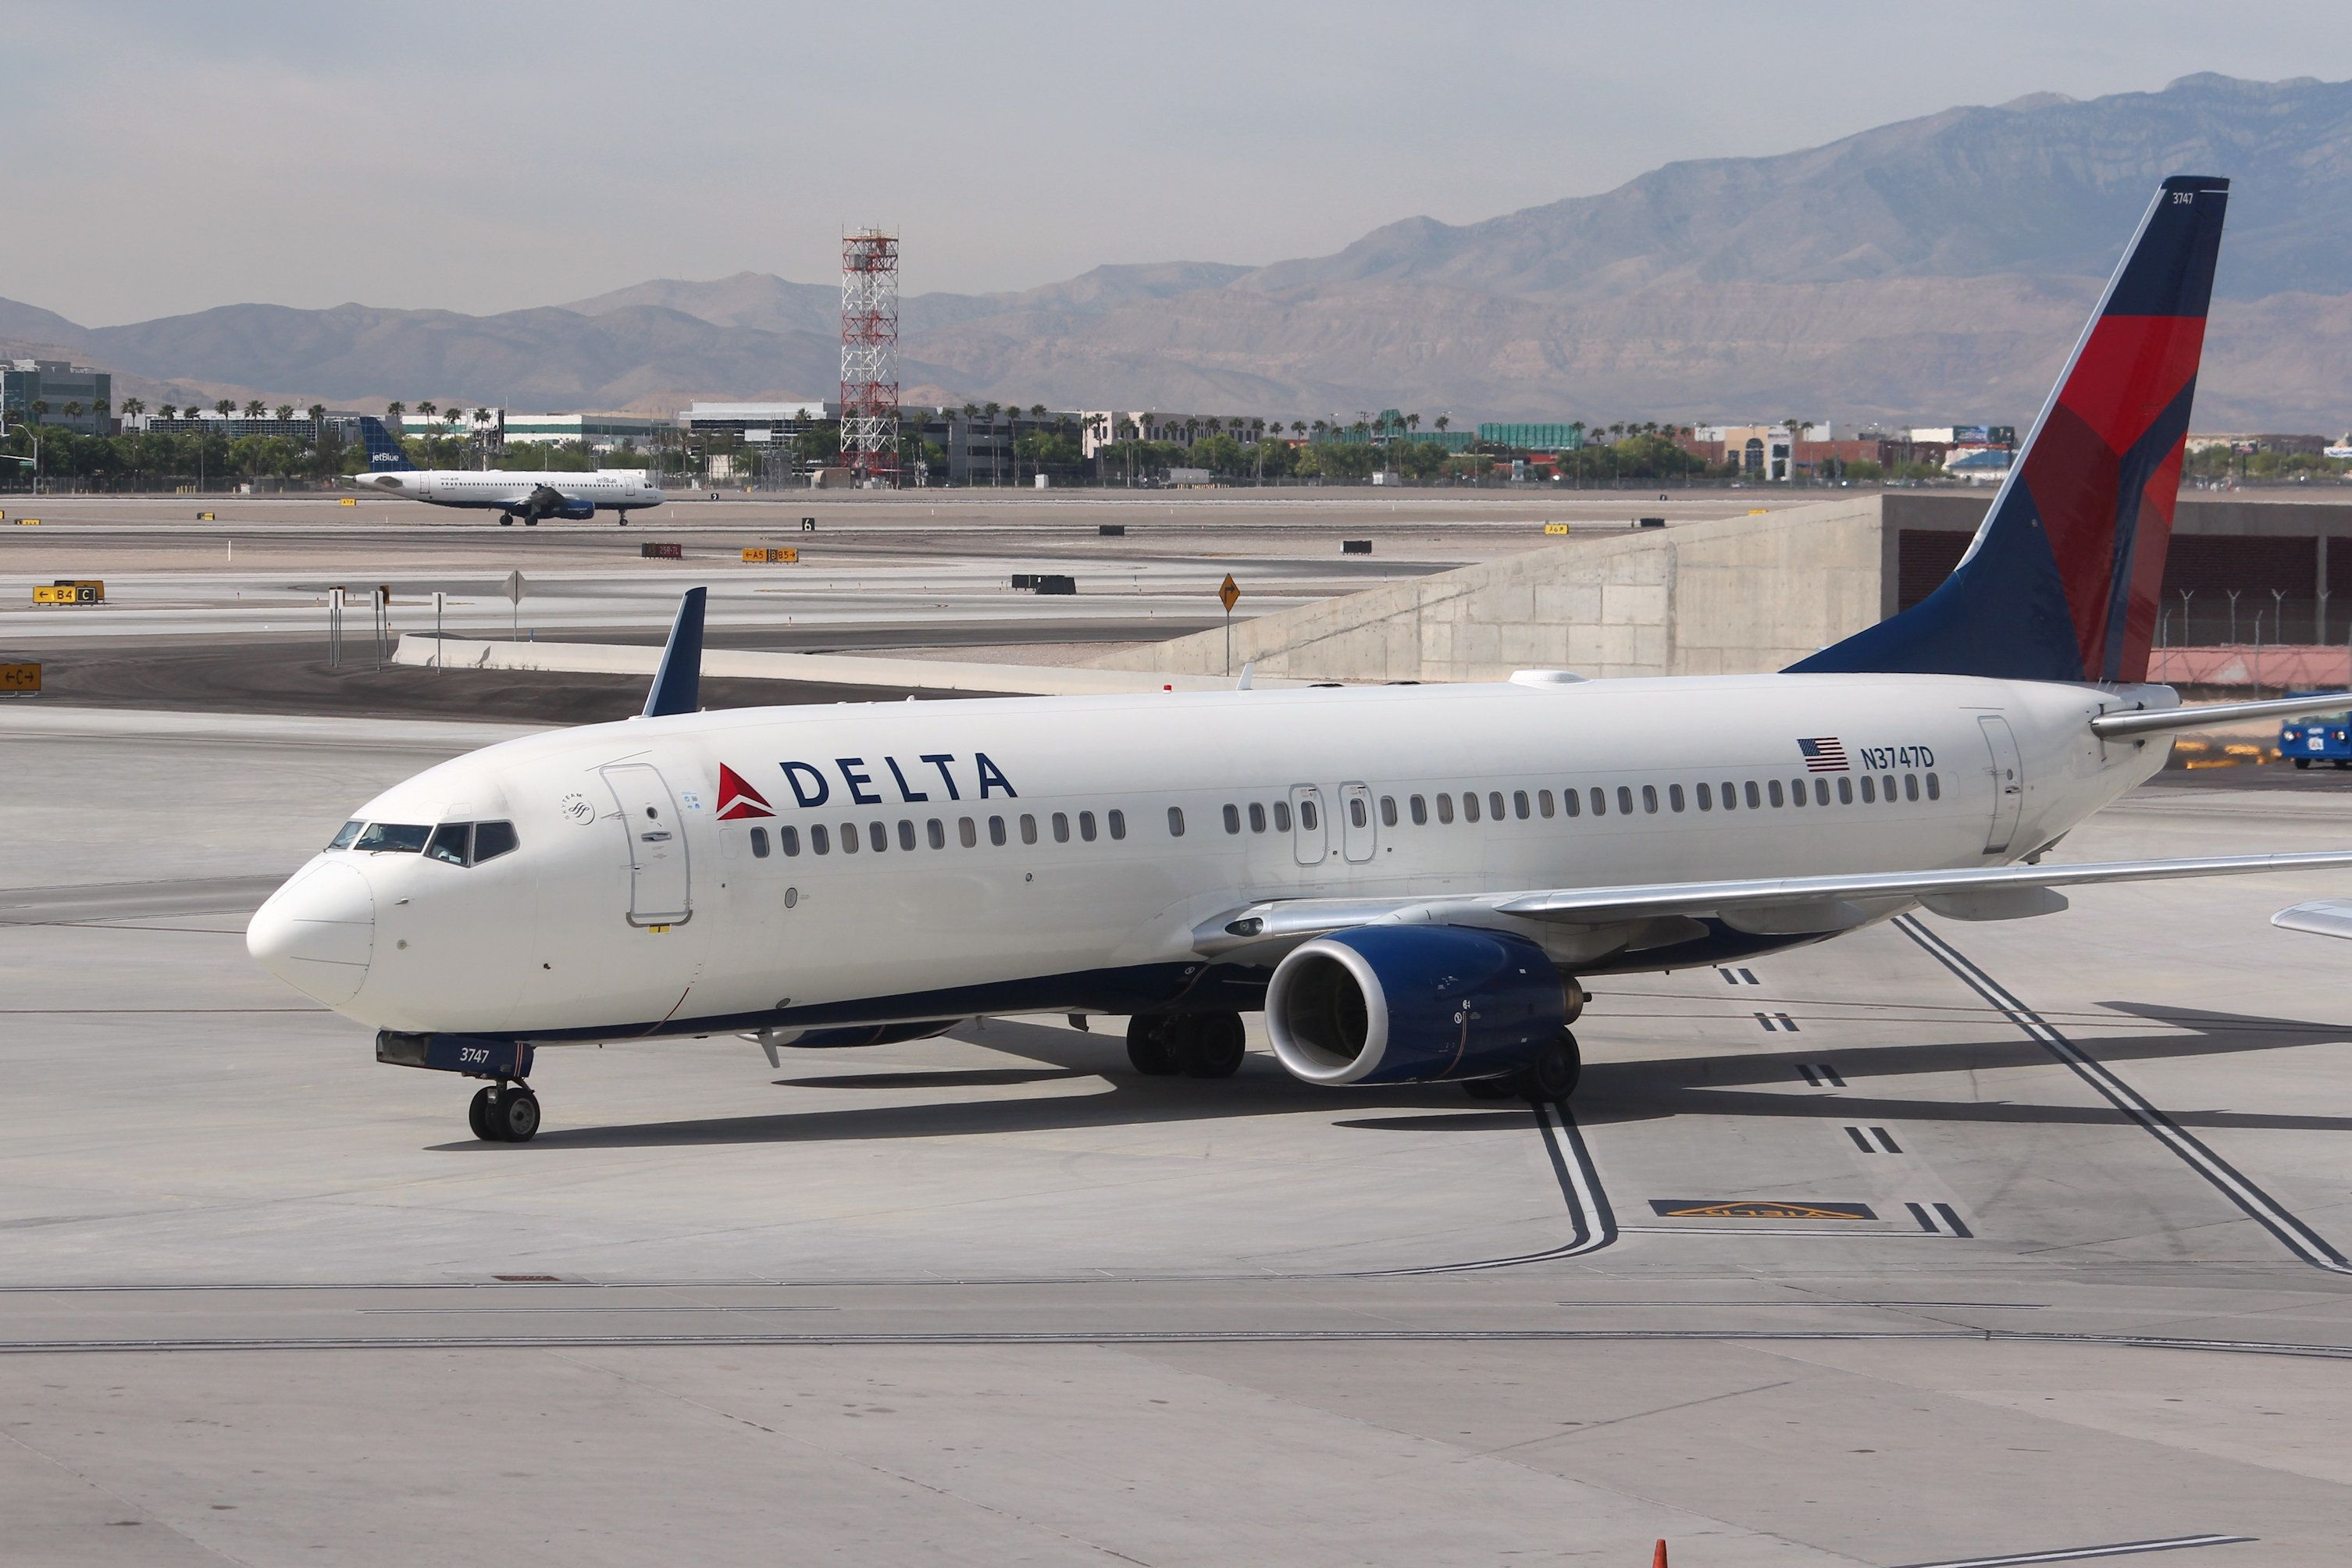 Las Vegas, United States - April 15, 2014: Boeing 737 of Delta Airlines at Las Vegas McCarran International Airport. As of 2013 Delta was the largest airline in the world with 120 million annual passengers.